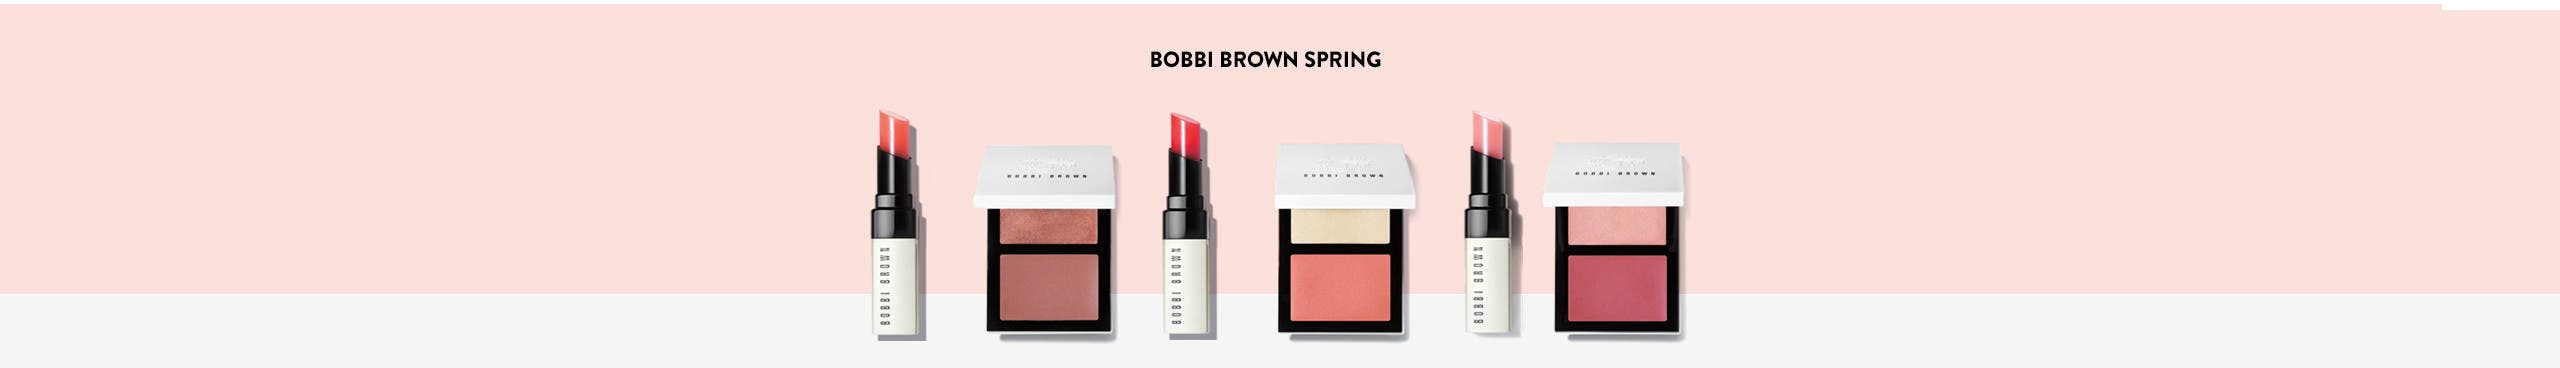 Bobbi Brown Spring.